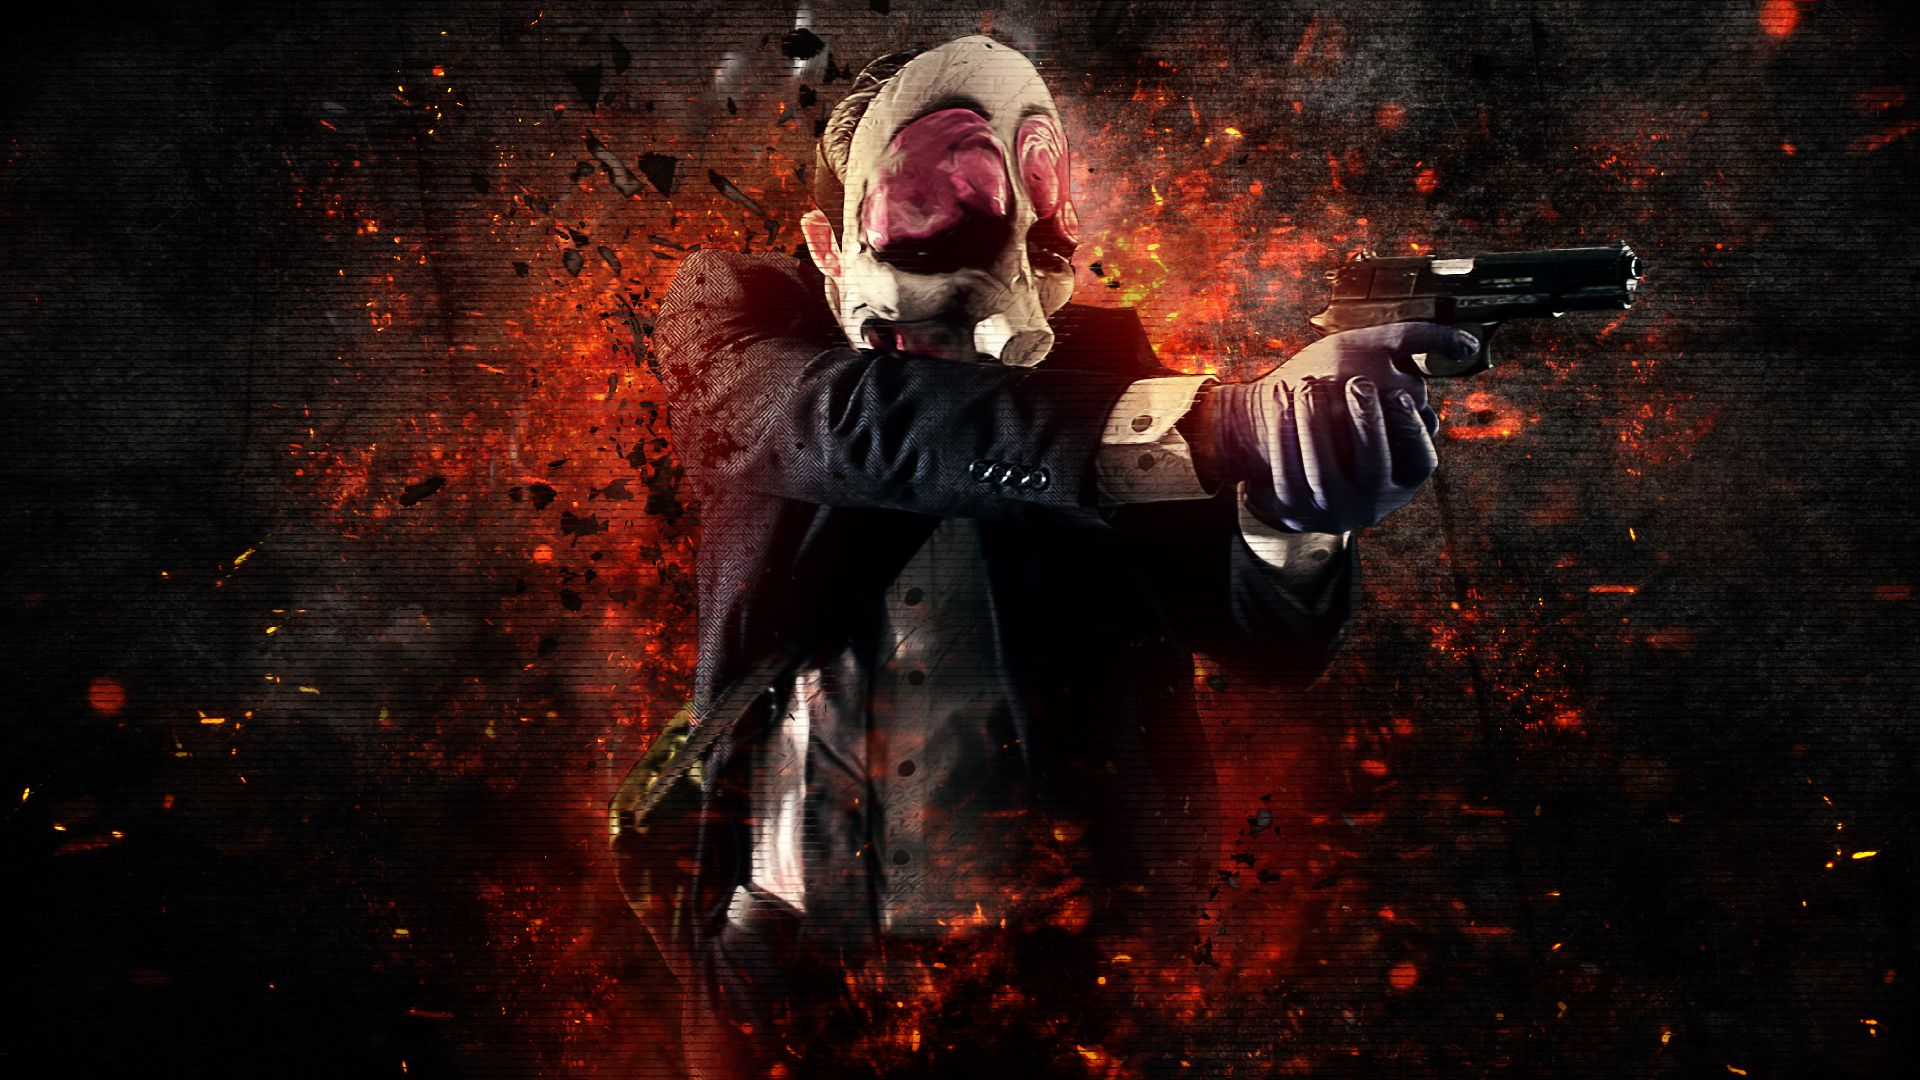 Pin By Eric To On Mafia Pinterest Payday 2 Payday The Heist And